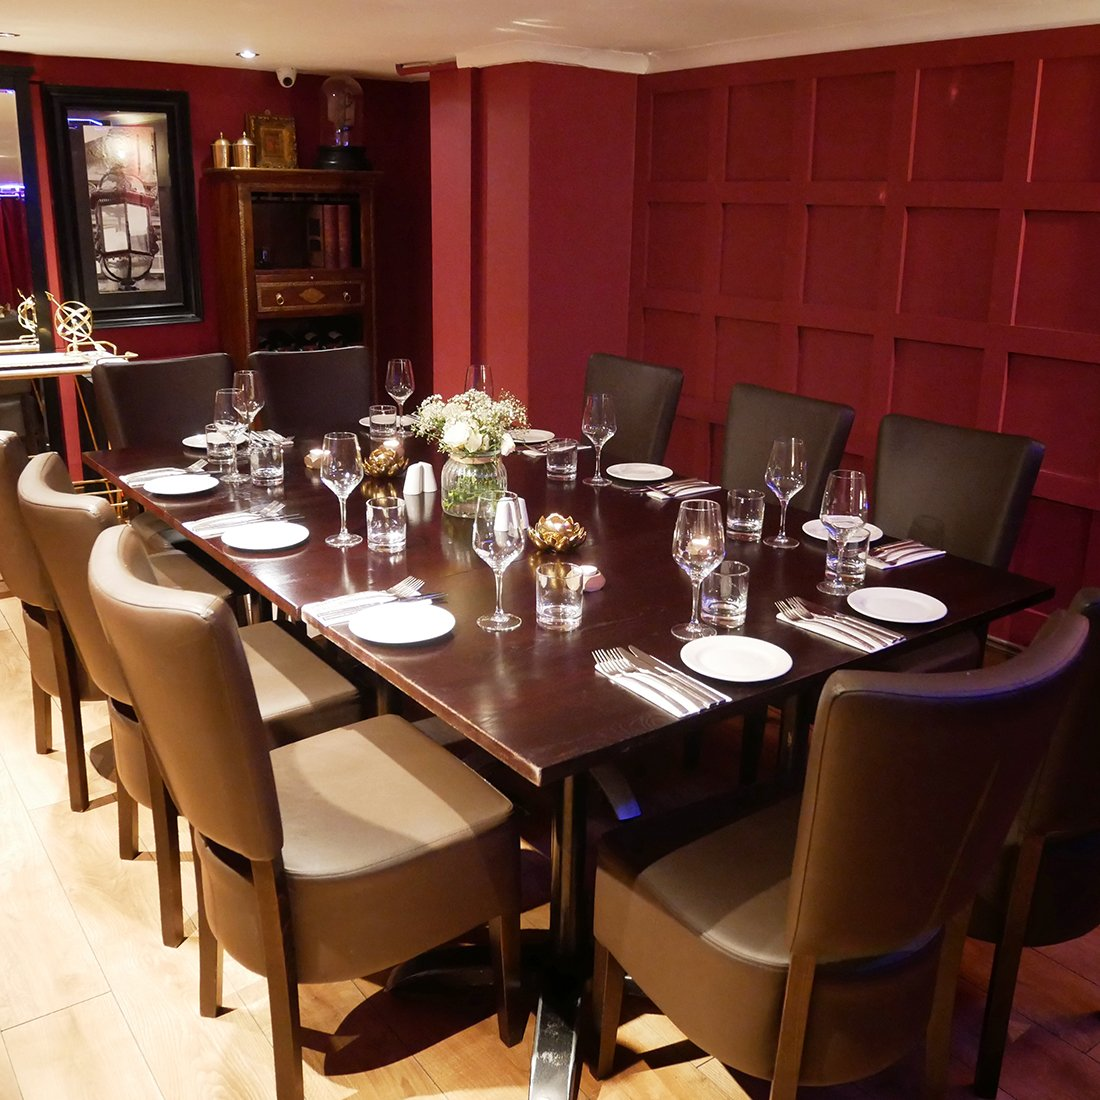 New Chapter On Twitter Planning Your Christmas Party At The Moment We Ve Got The Perfect Idea For You A Delicious Dinner In Our Newly Renovated Private Dining Room We Have Two